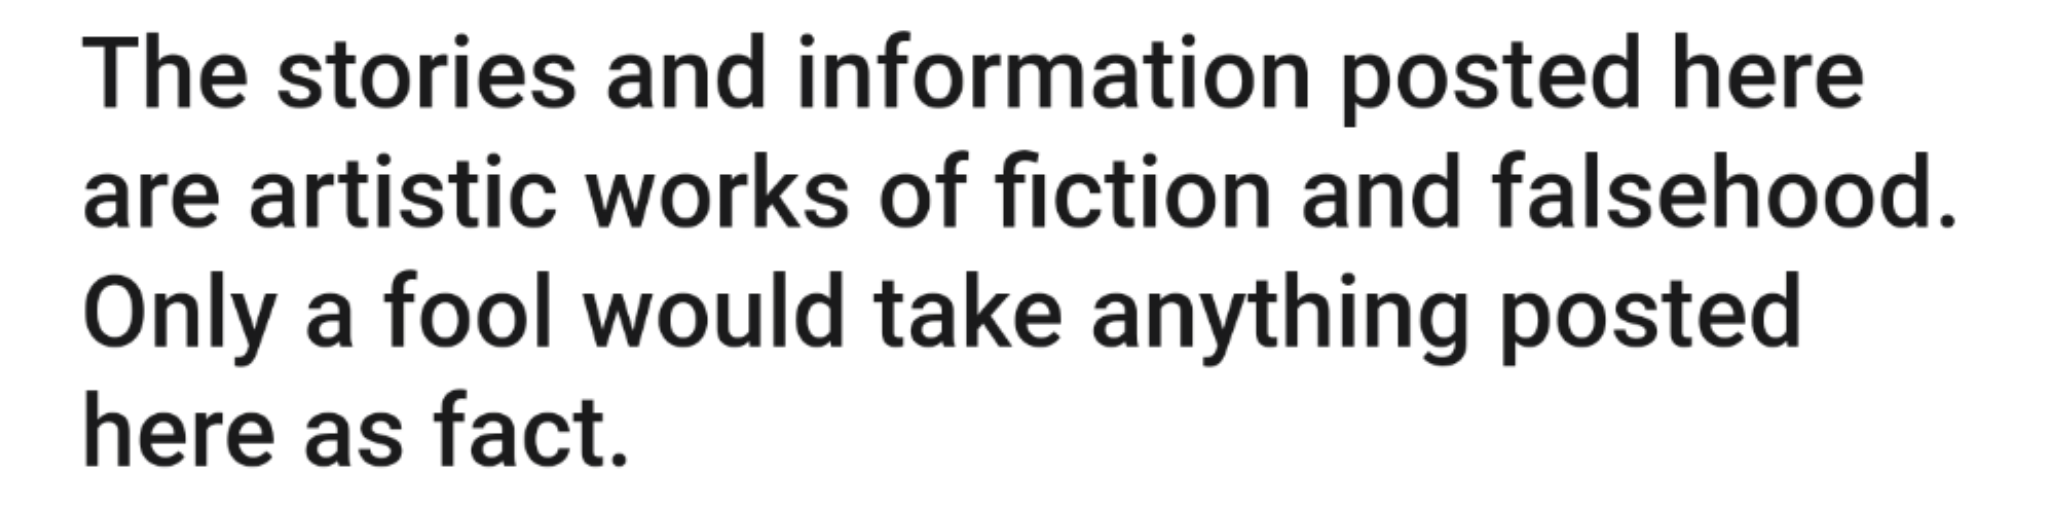 disclaimer that people didn't read, apparently.